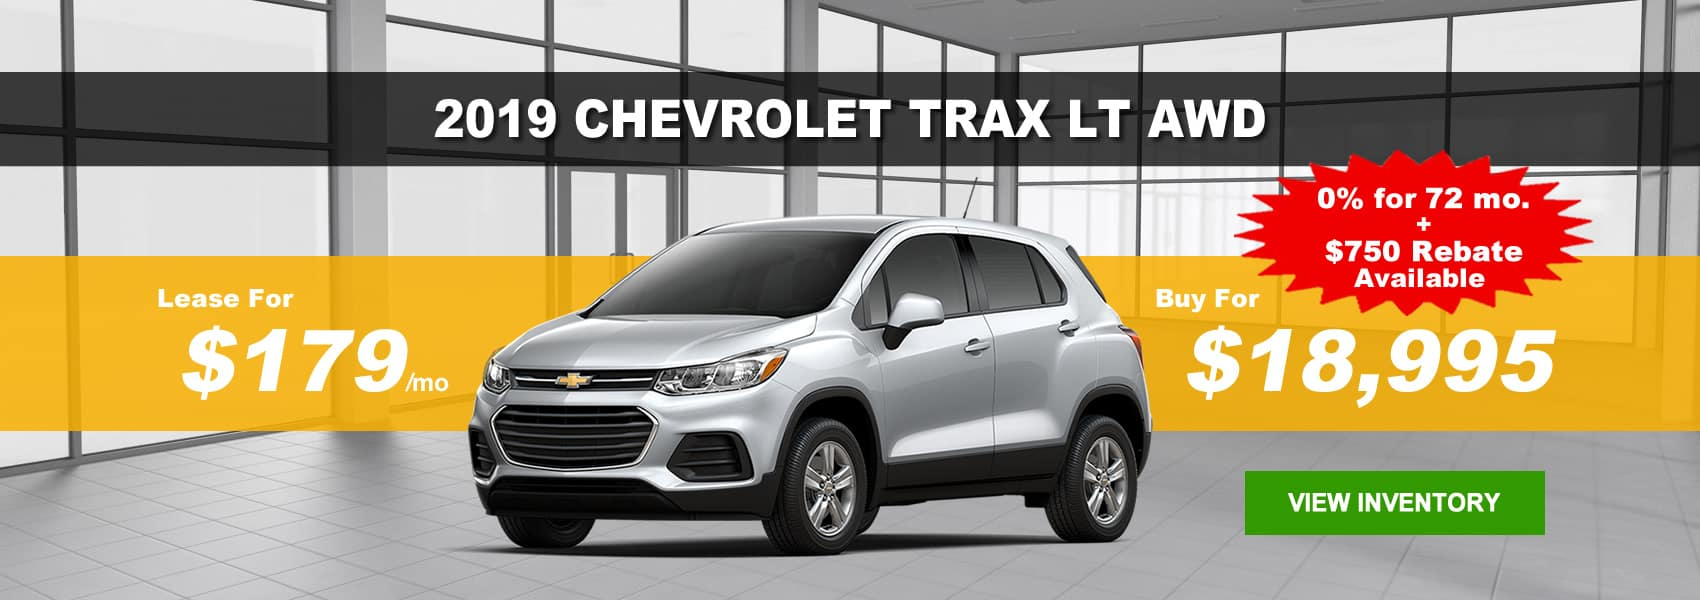 Chevy Dealers In Ma >> Lannan Chevrolet Boston Ma Chevy Dealer In Lowell Ma